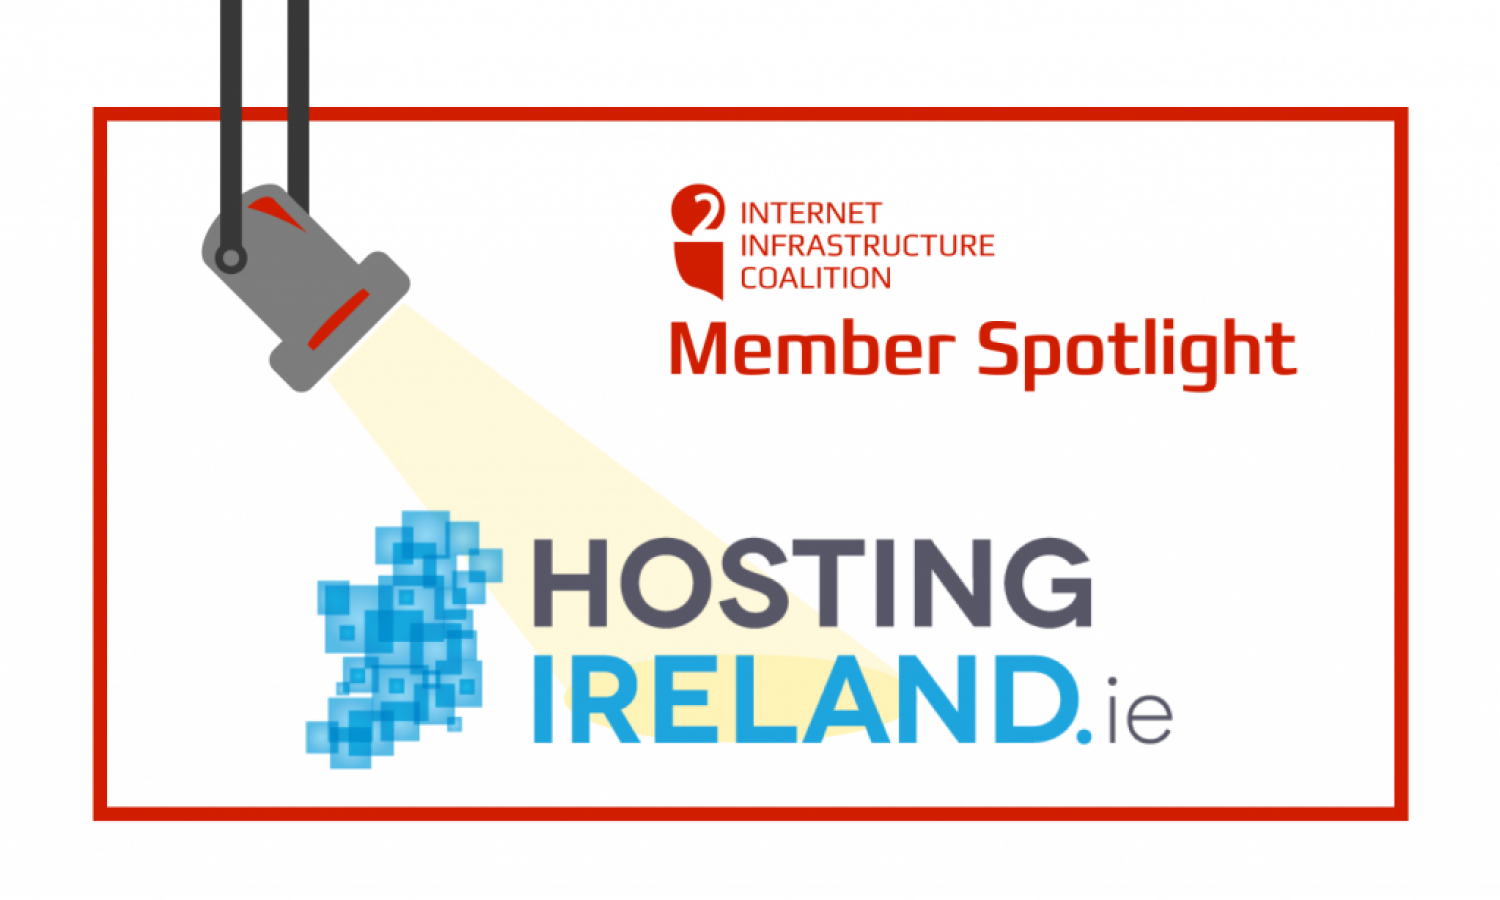 Member Spotlight Hosting Ireland